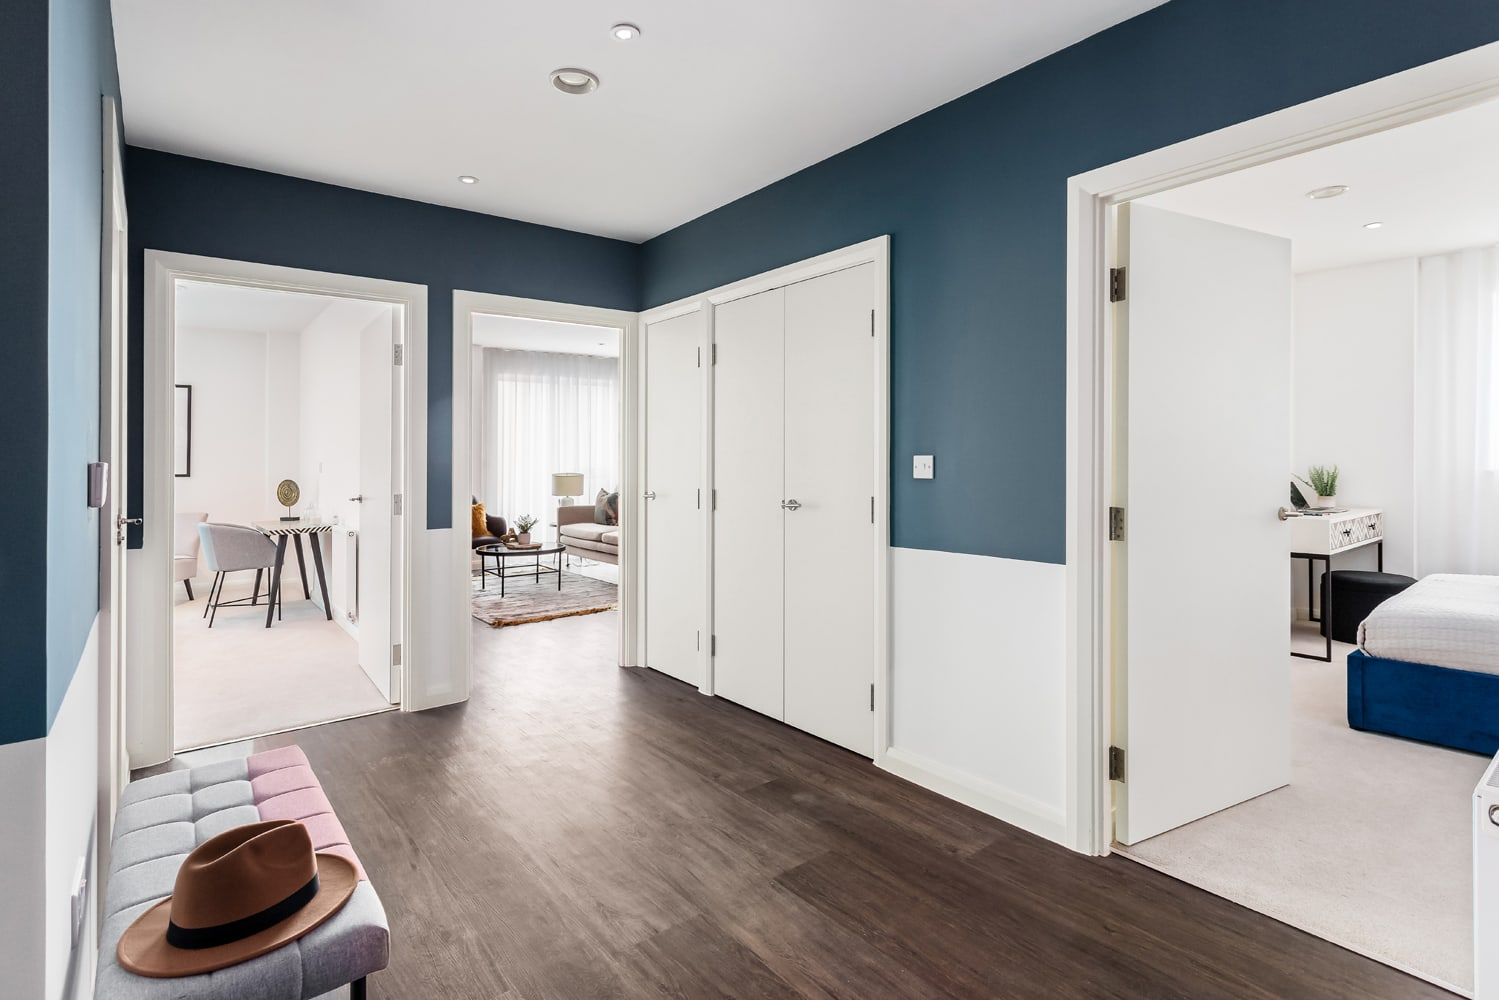 Internal photography of BeWest's Waterside Heights - Shared Ownership homes available on Share to Buy